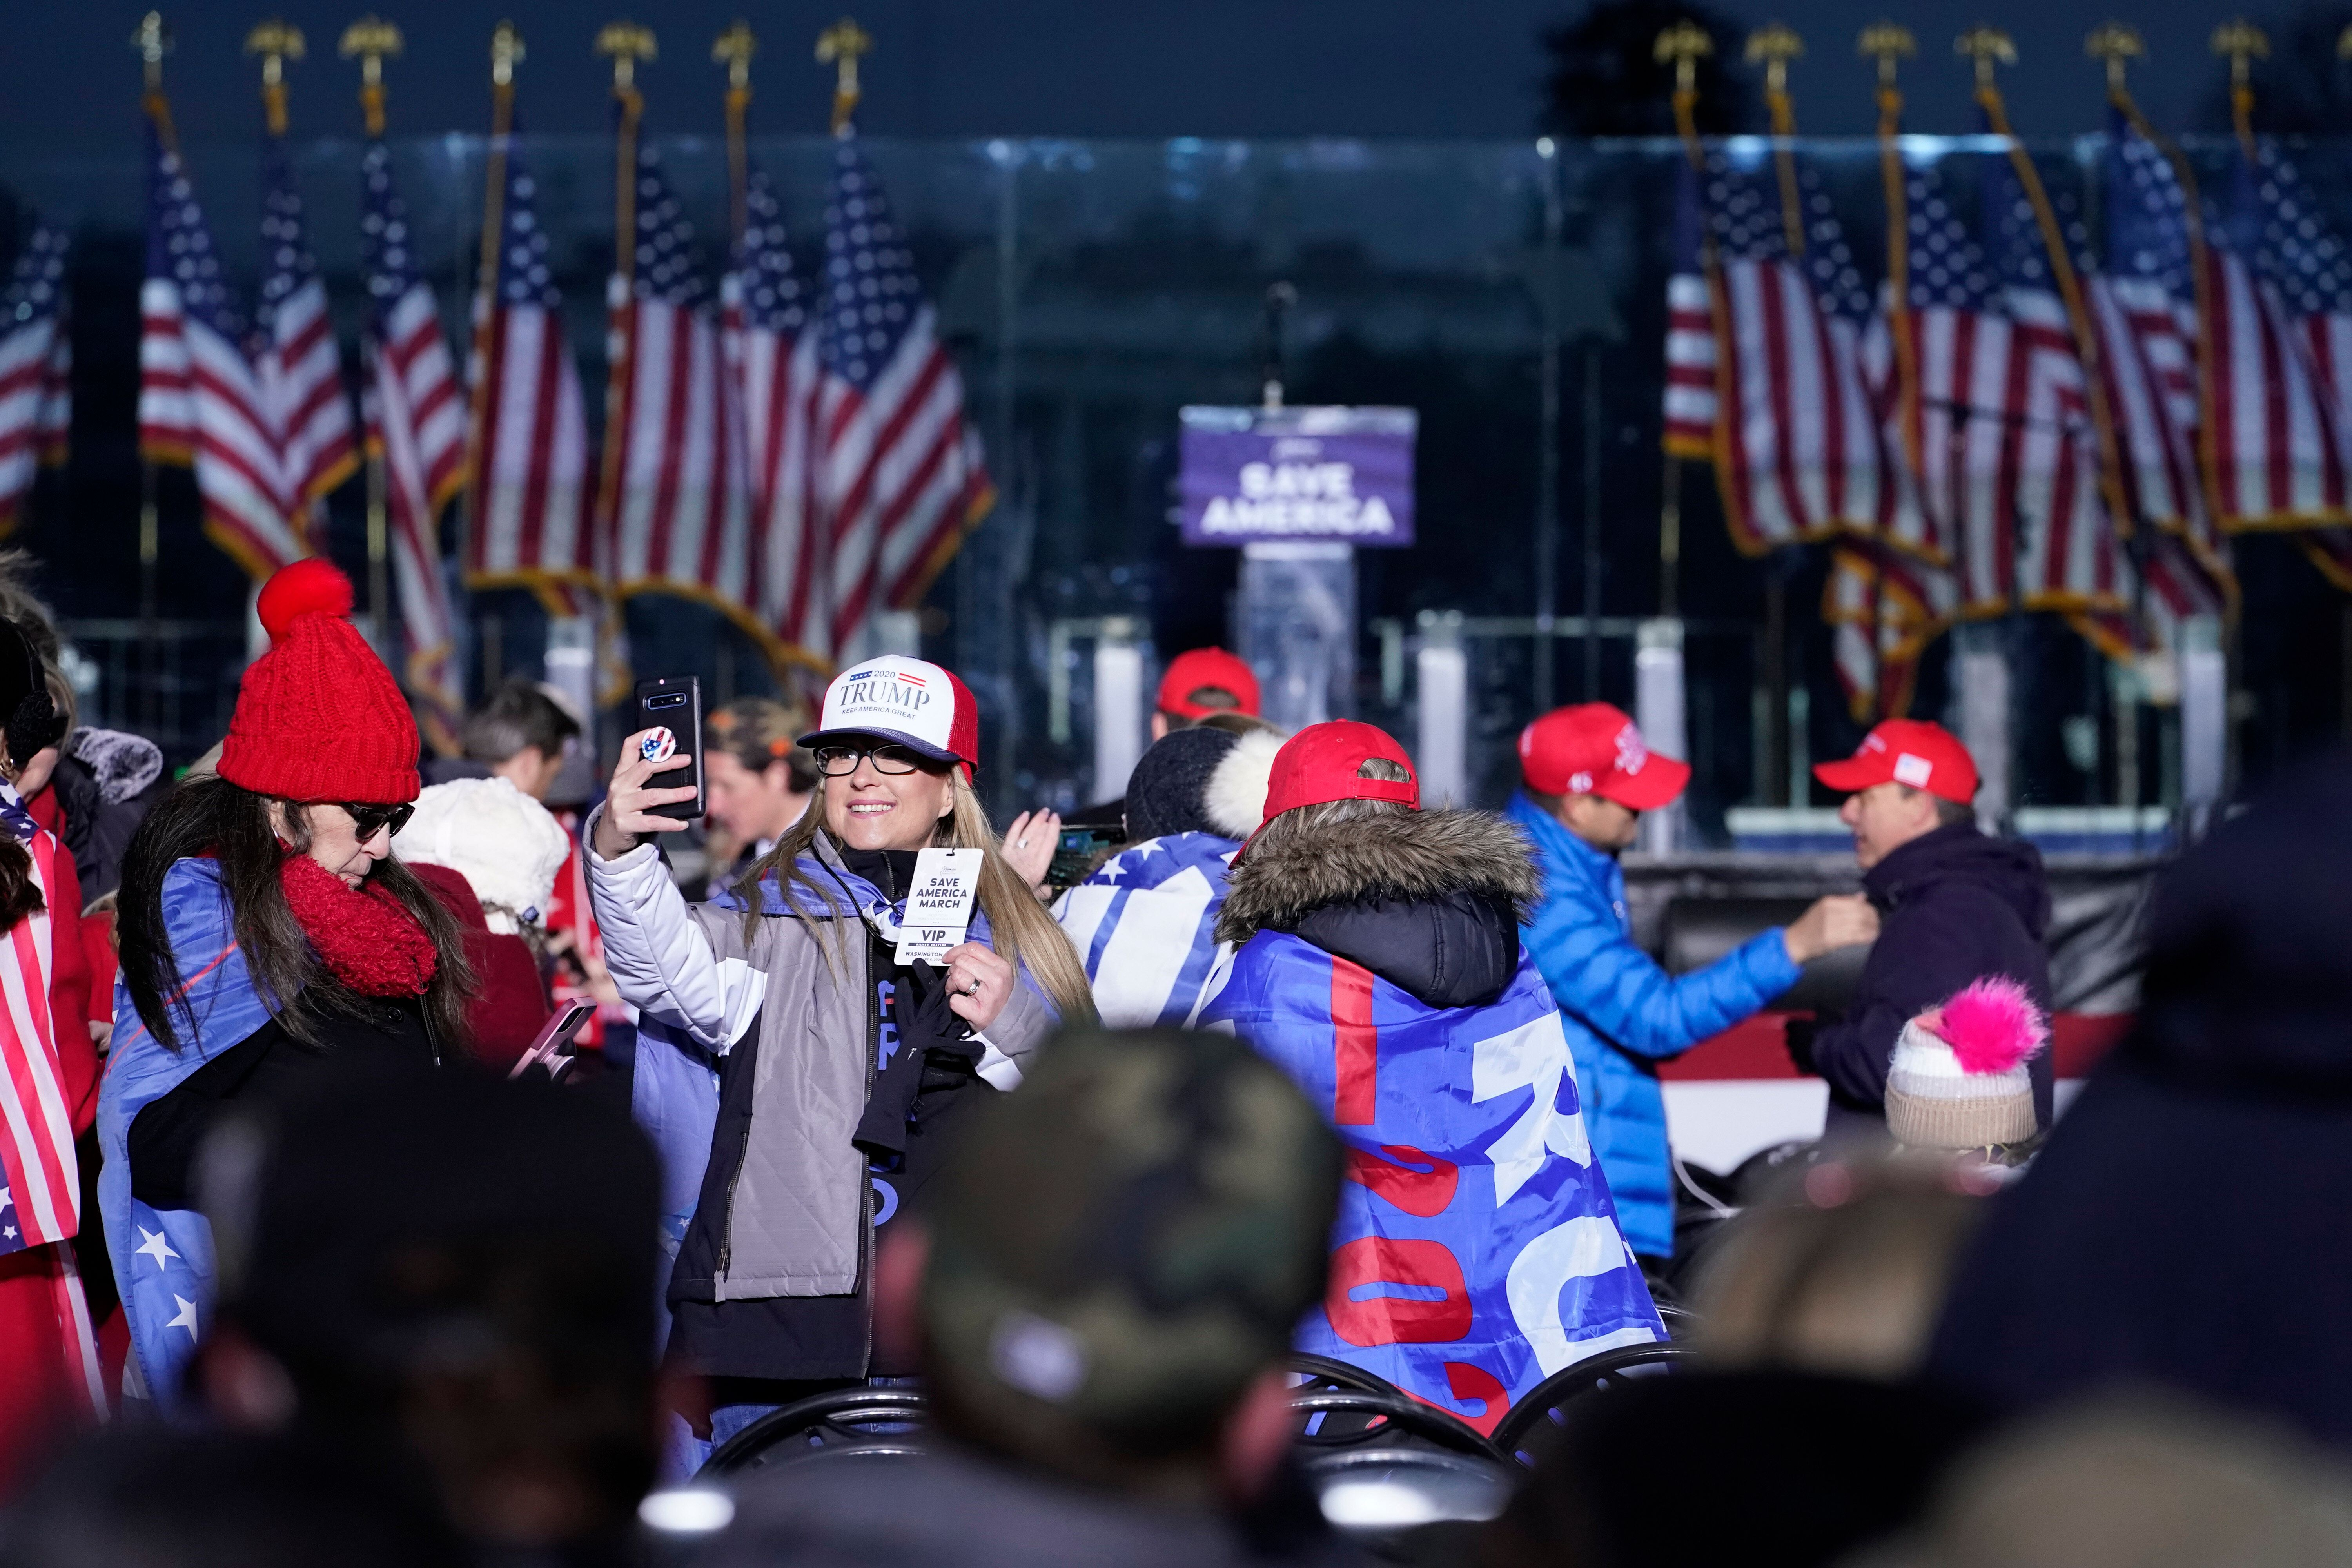 In this Jan. 6, 2021 file photo people arrive to attend a rally in support of President Donald Trump. An AP review of records